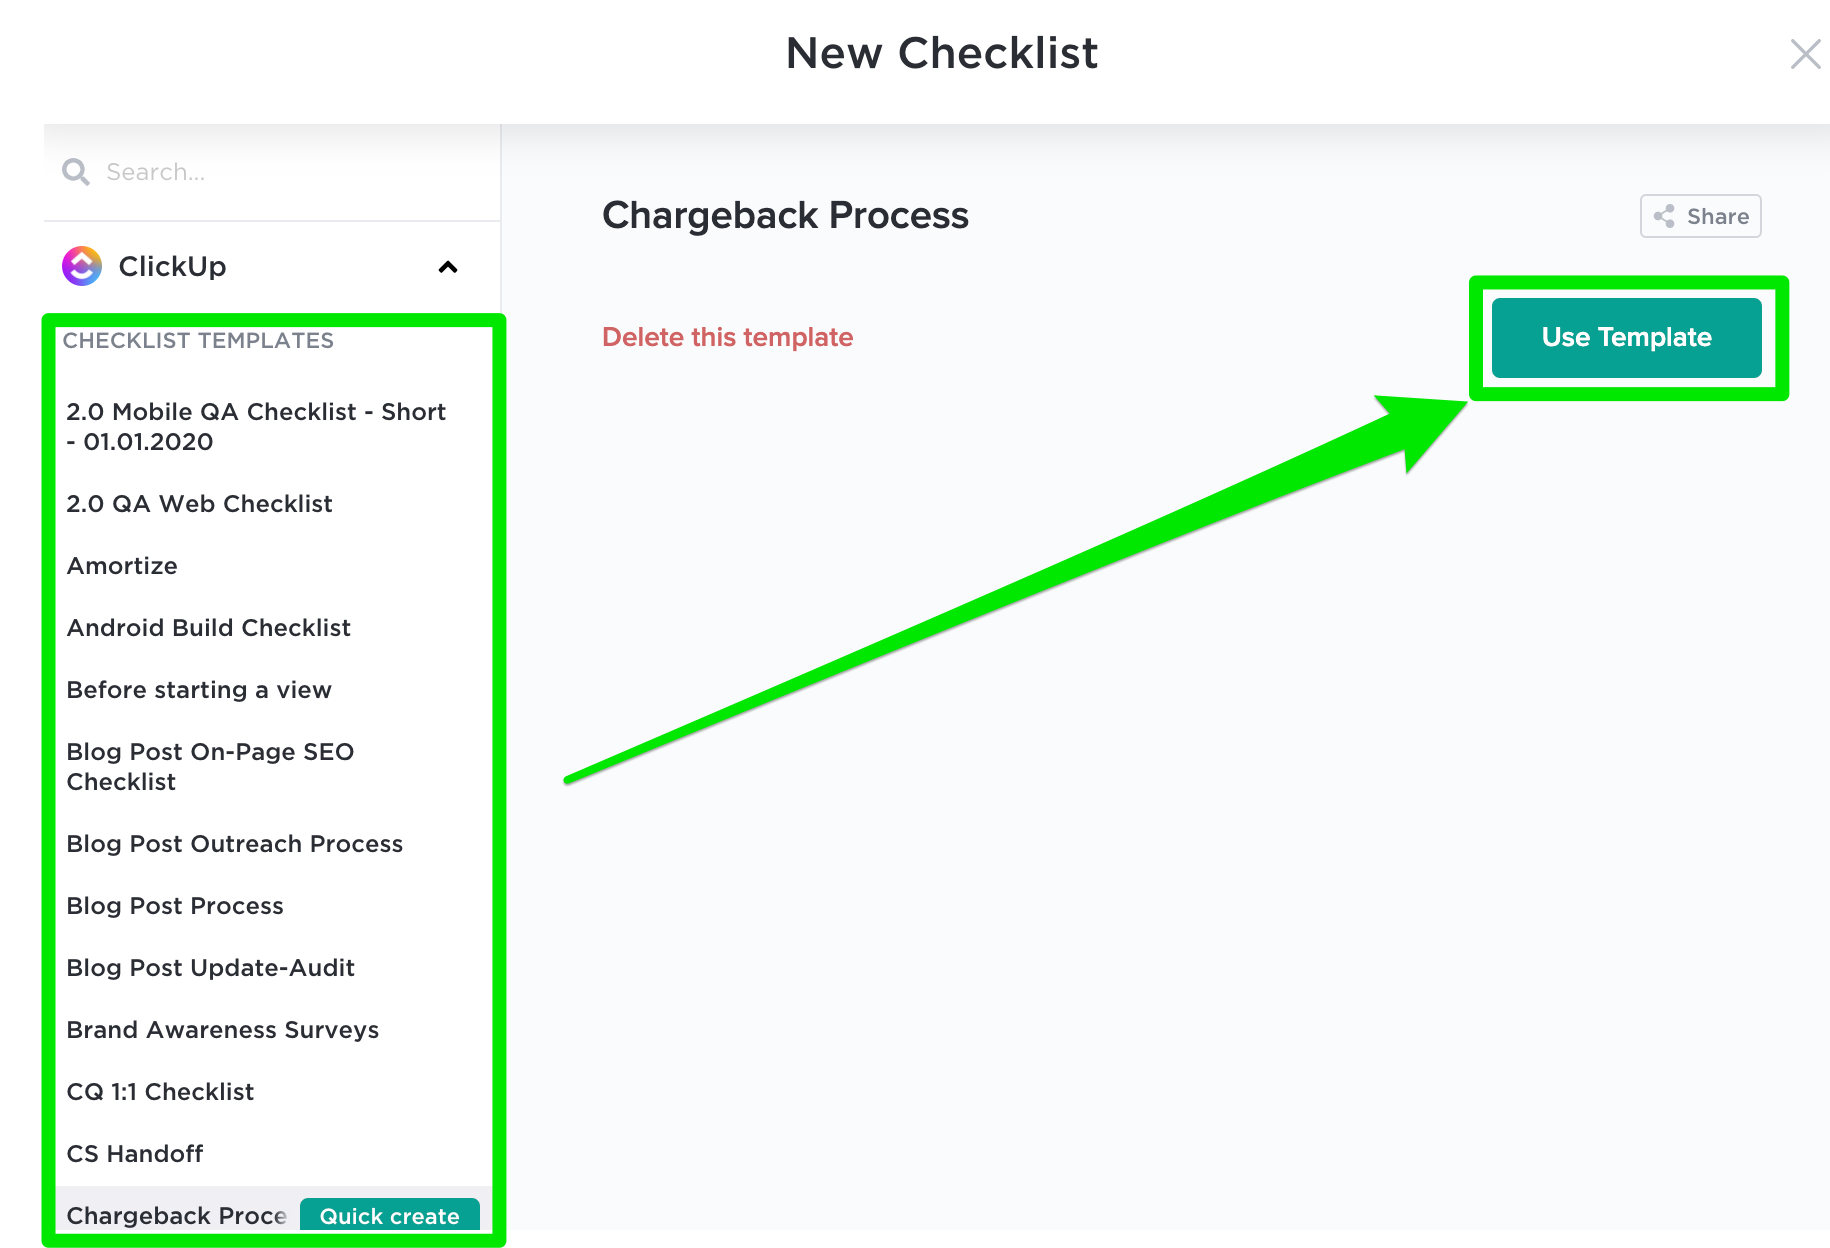 Showing how to select and use a checklist.